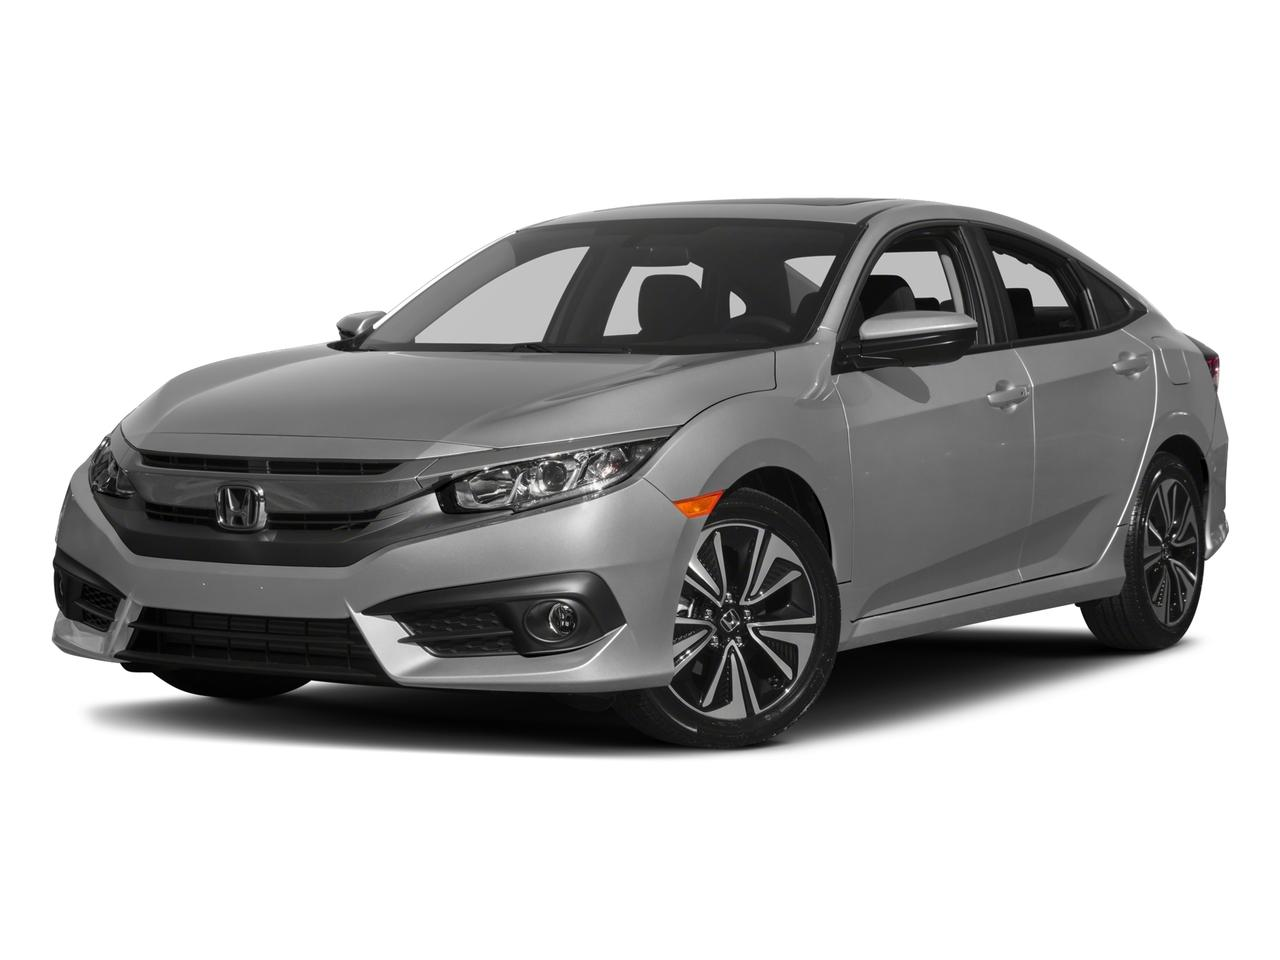 2017 Honda Civic Sedan Vehicle Photo in Gardner, MA 01440